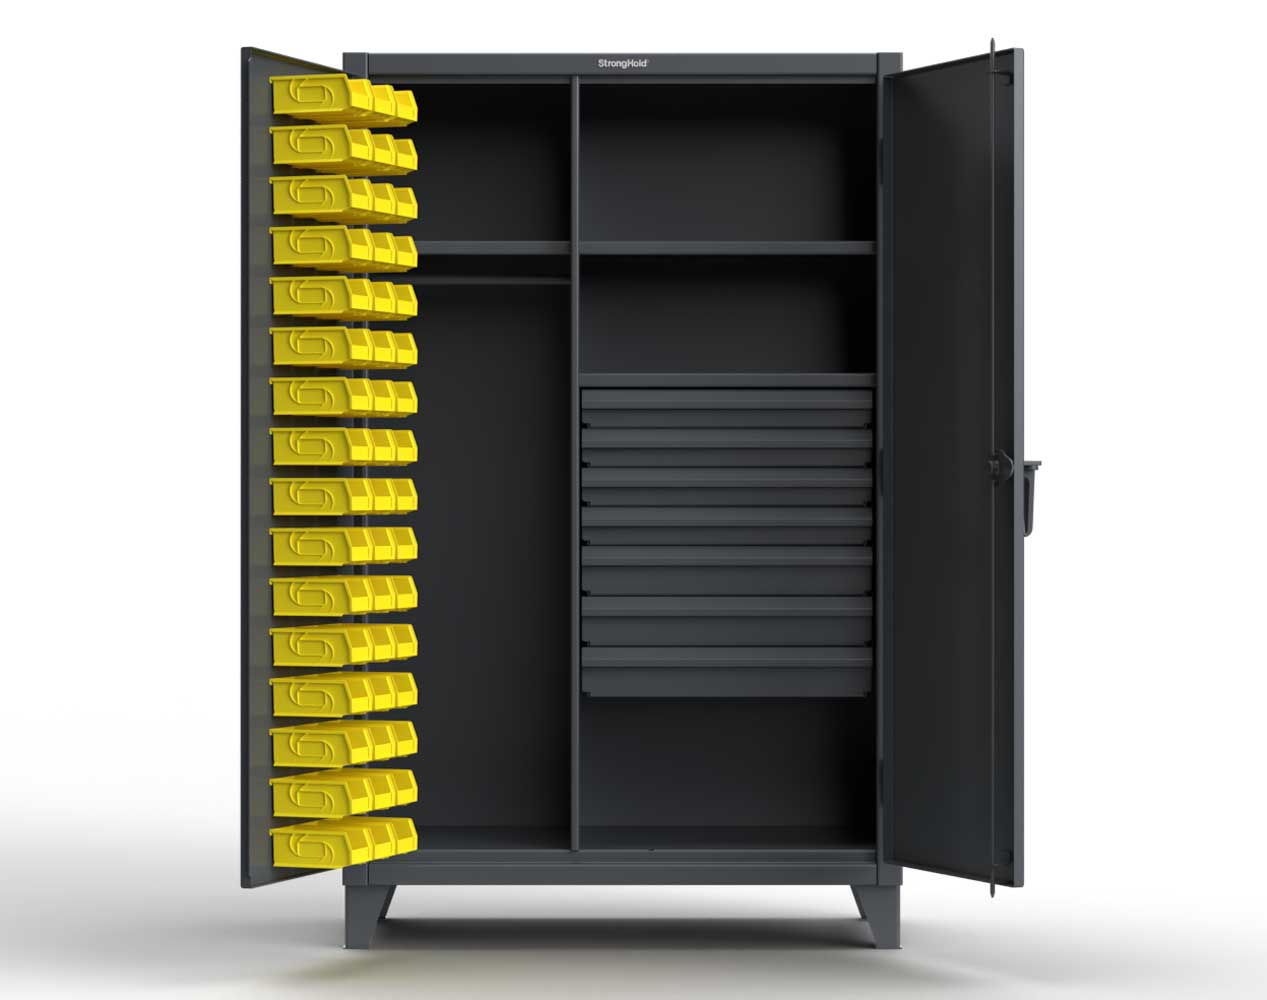 Extra Heavy Duty 12 GA Wardrobe Cabinet with 48 Bins, 7 Drawers, 3 Shelves – 48 In. W x 24 In. D x 78 In. H